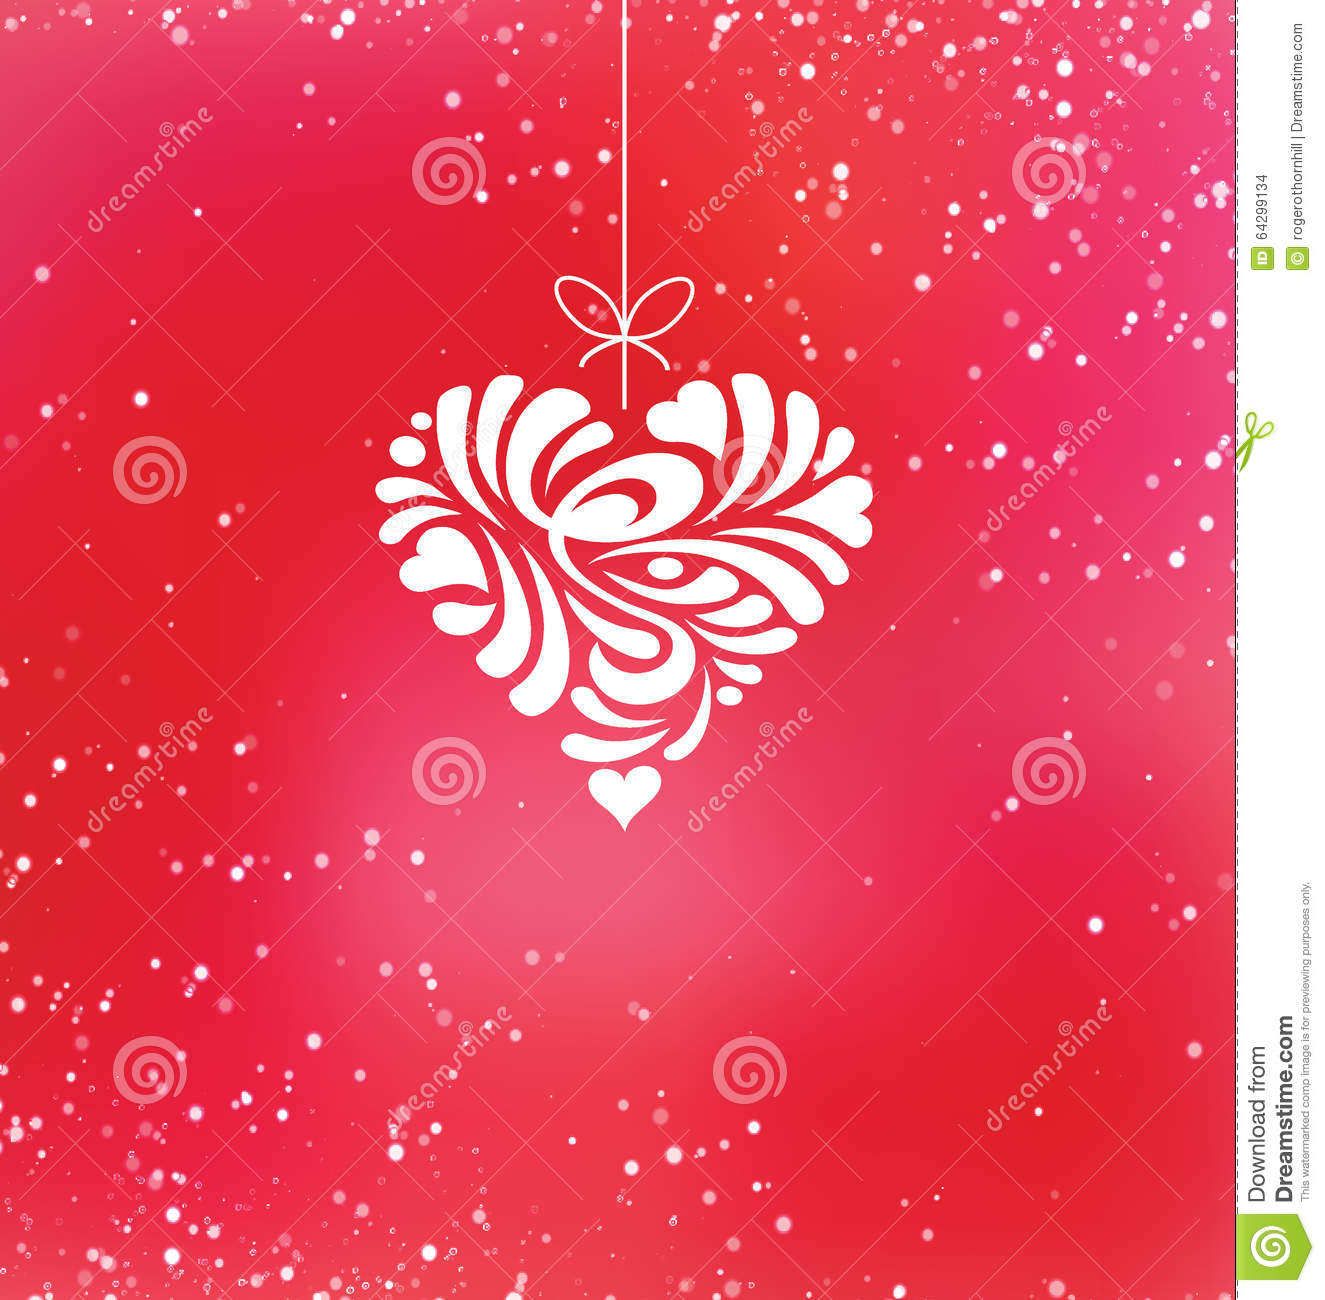 Happy Valentines Day Greeting Card Design Vector Image – Valentines Card Designs